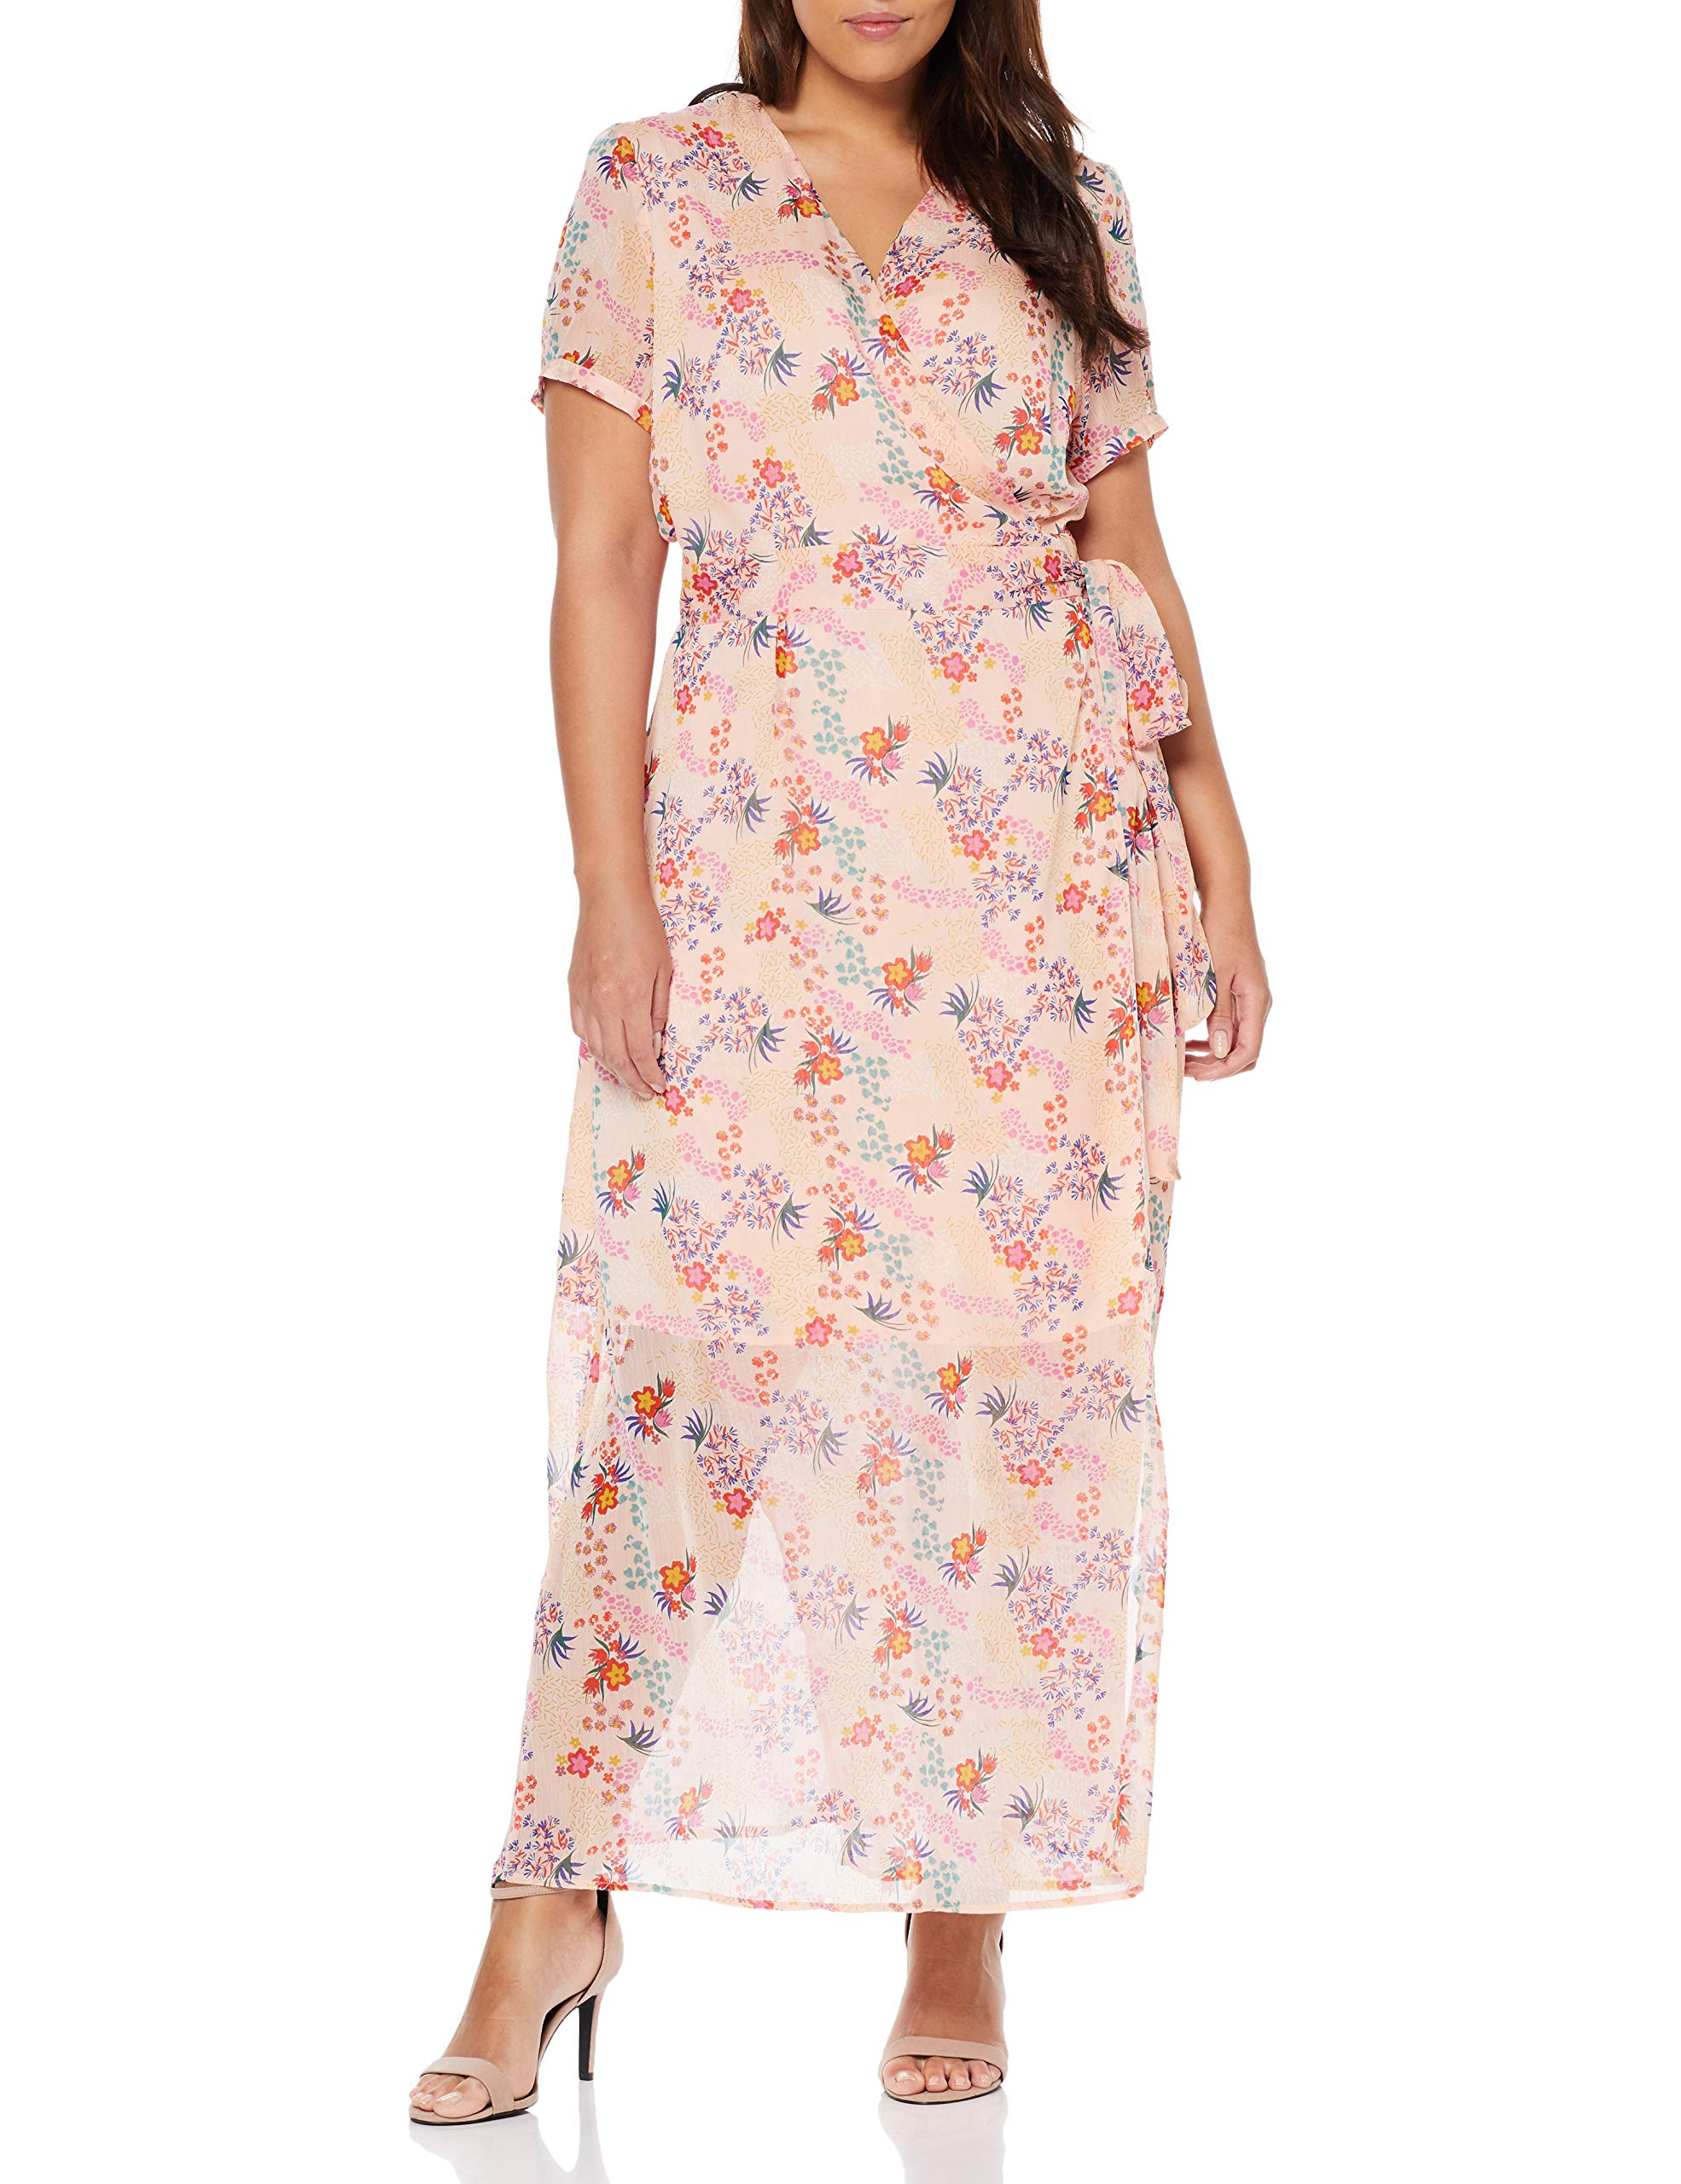 Pink Dress RobeMulticolorelight Floral Glamorous Summer Bw5150taille Wrap Curve Over Fabricant22Femme N8XOknwP0Z